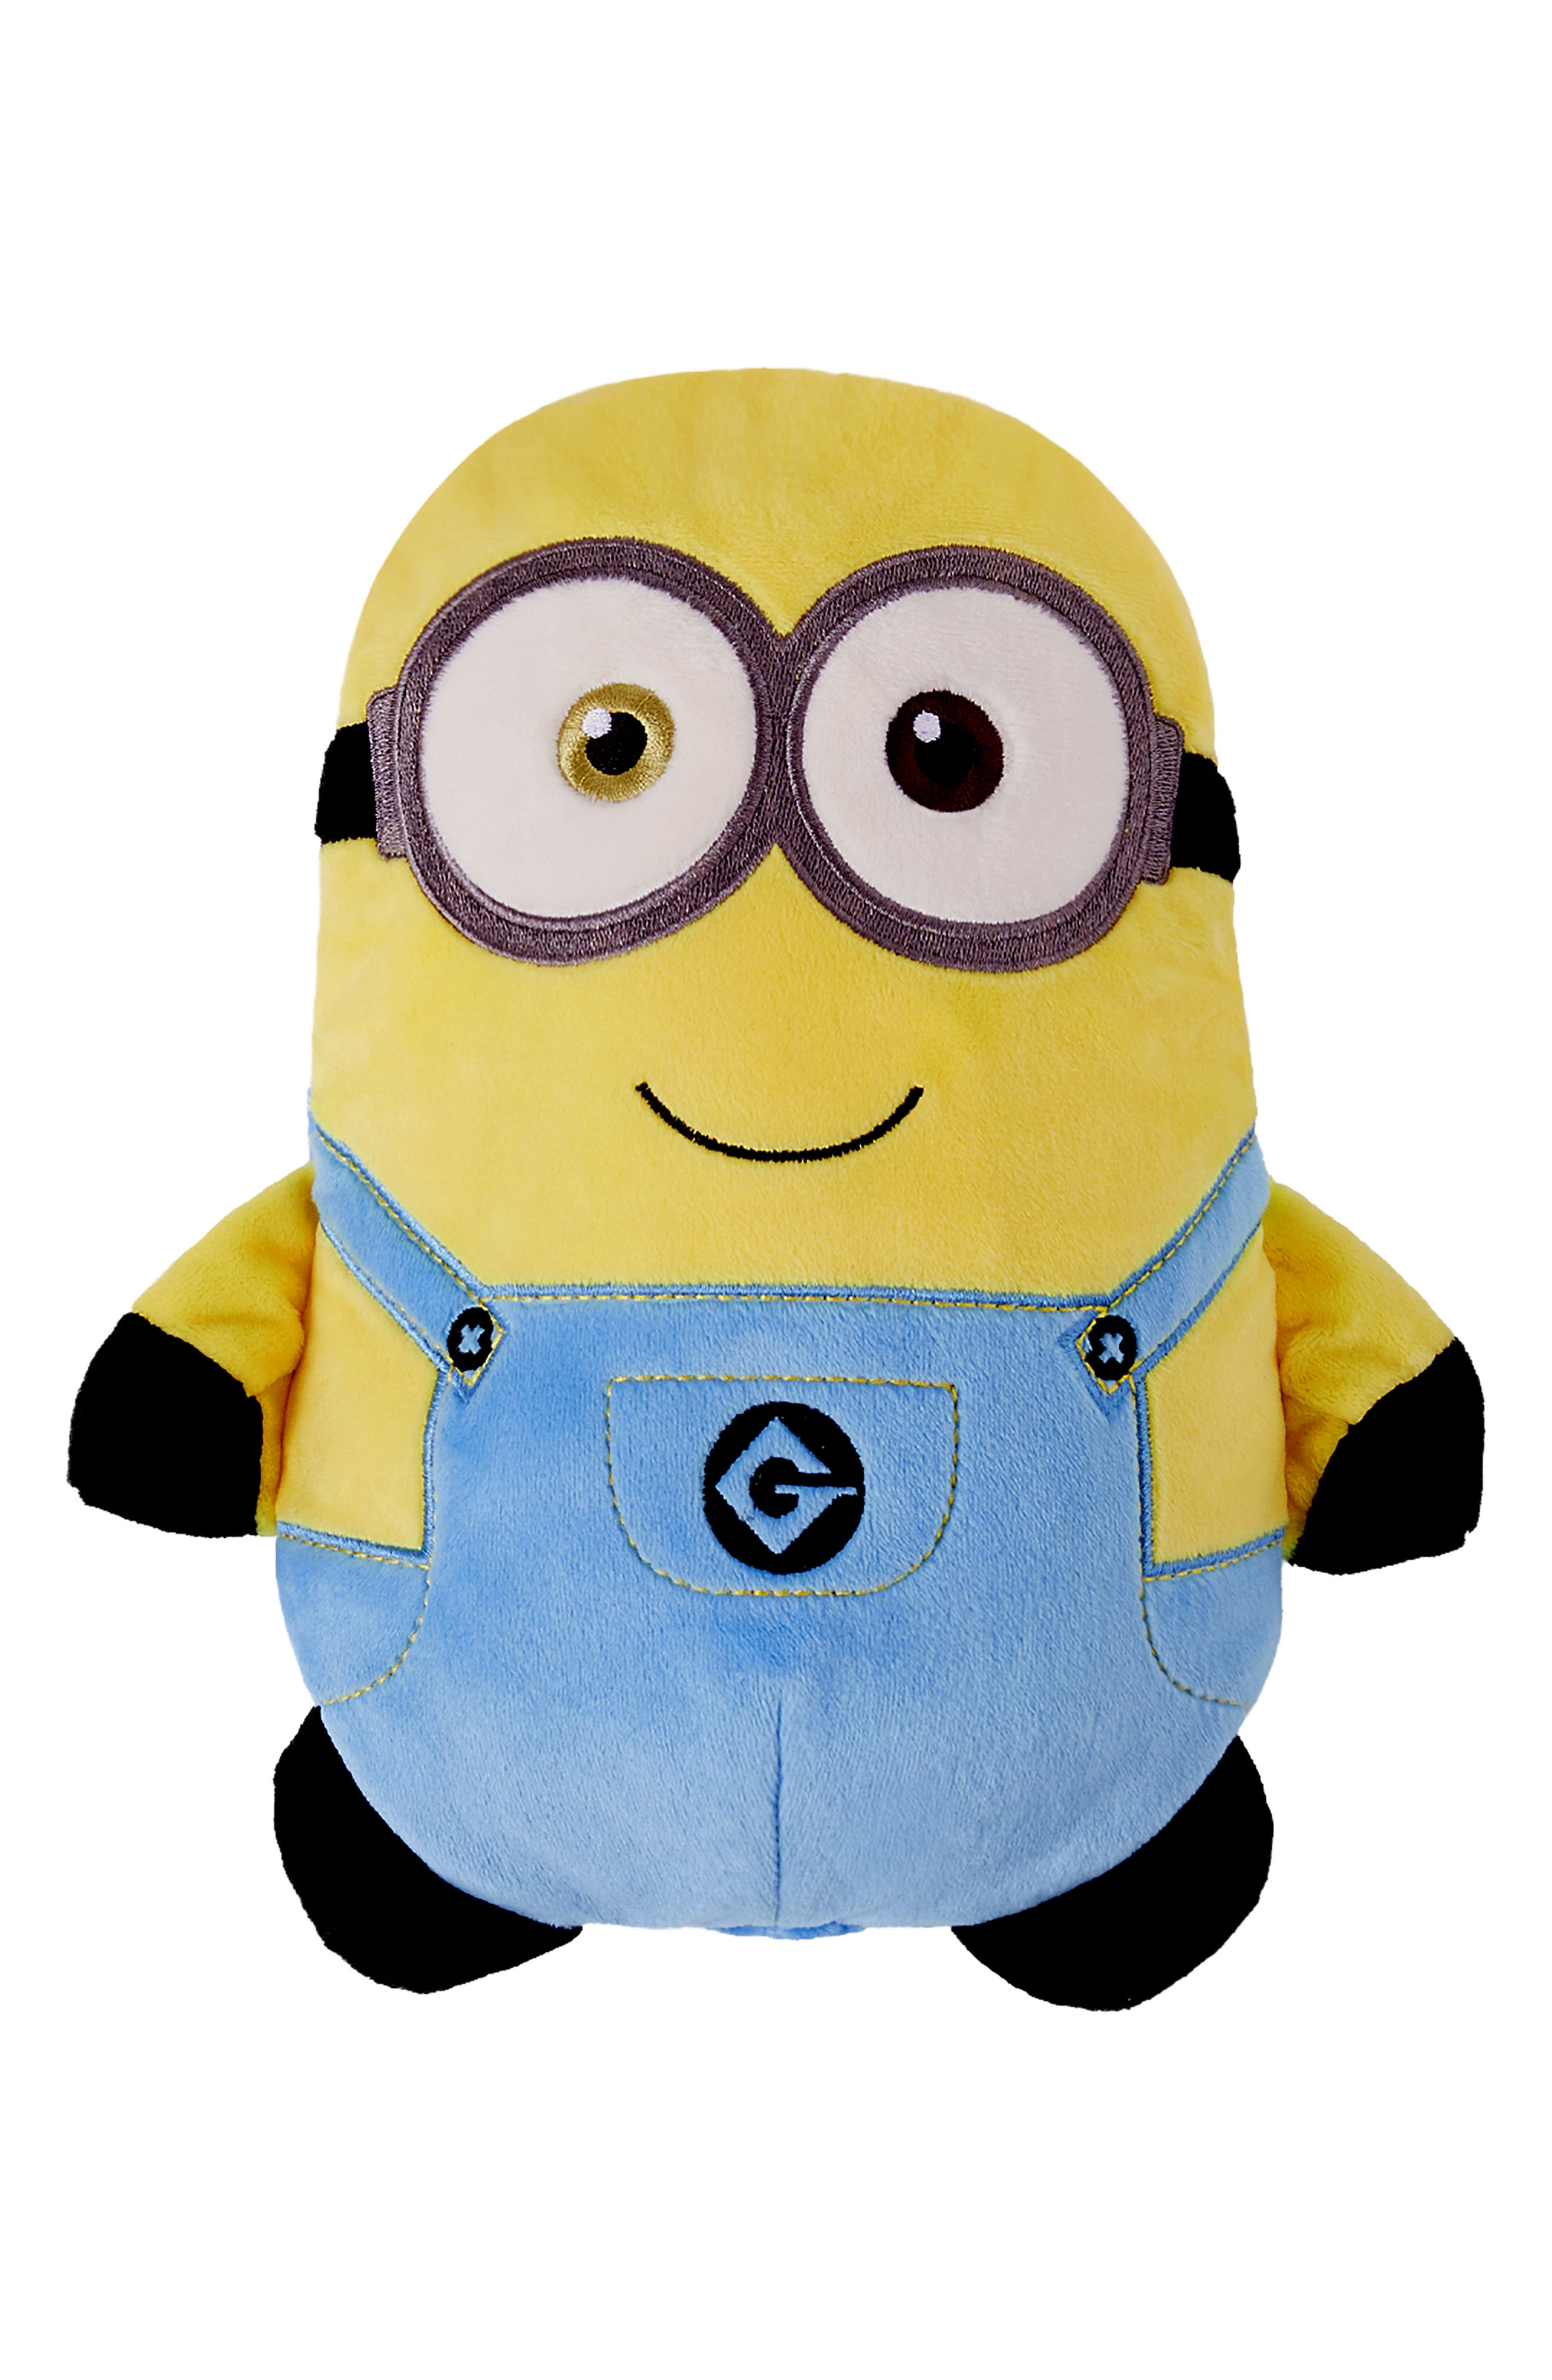 CUBCOATS, Minion Bob<sup>®</sup> 2-in-1 Stuffed Animal Hoodie, Main thumbnail 1, color, YELLOW / BLUE MIX